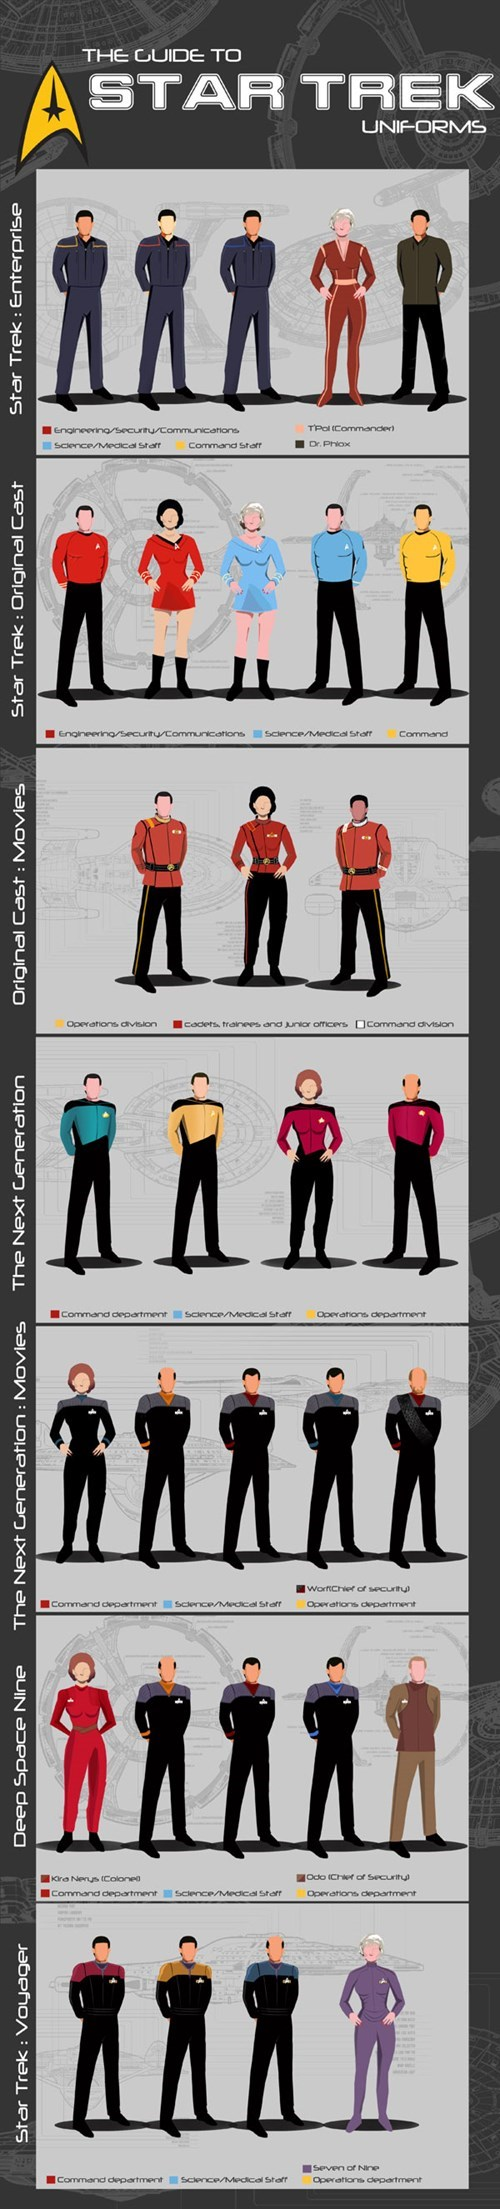 Your Guide To Star Trek Uniforms